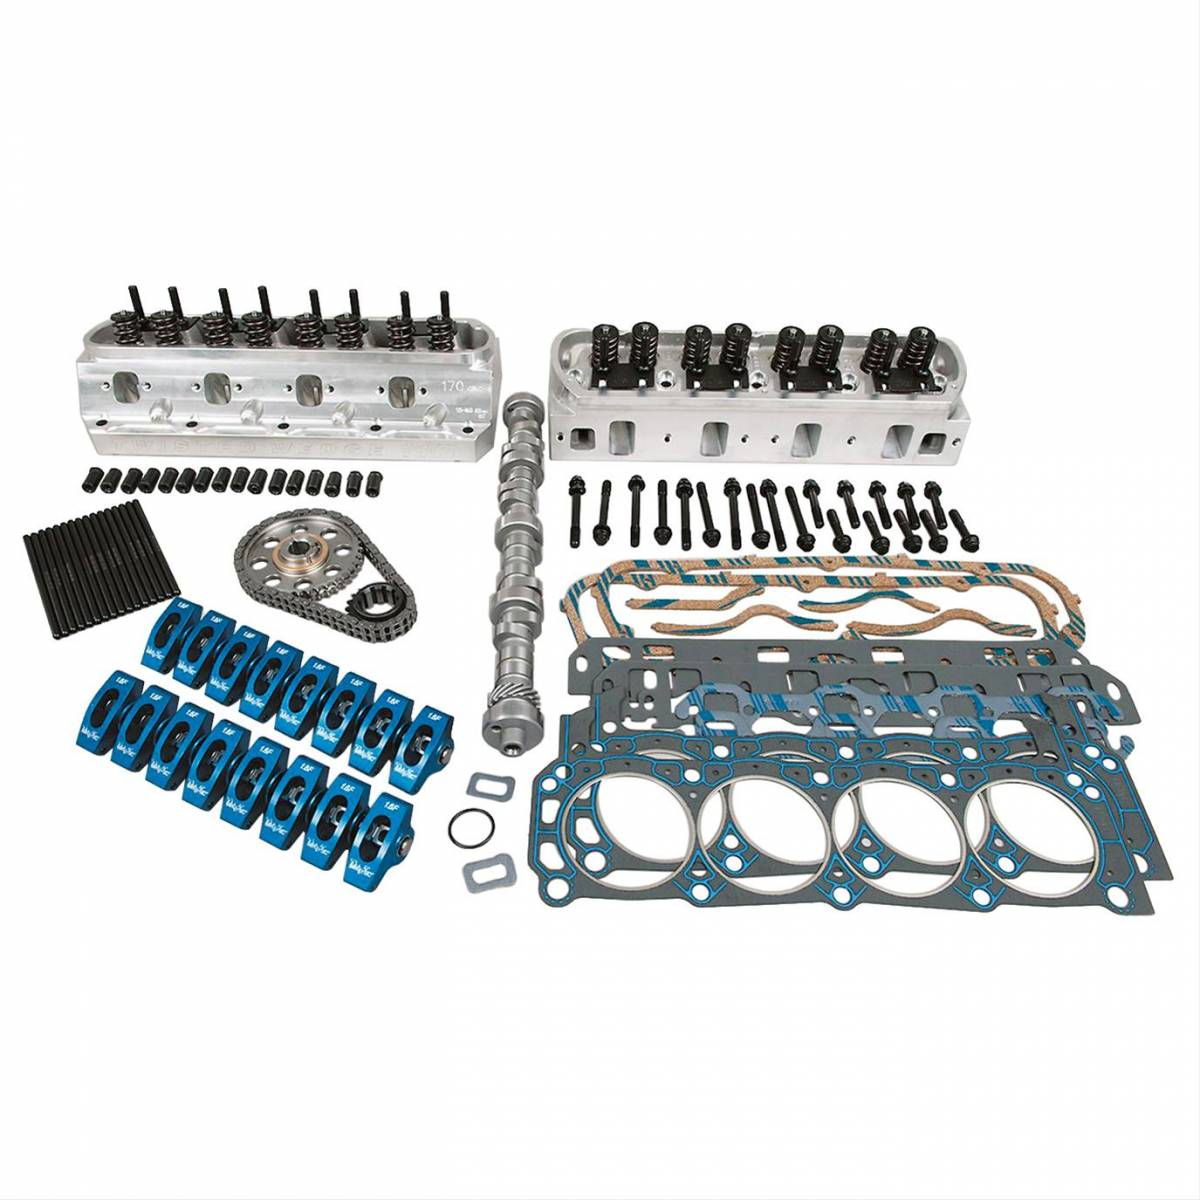 Trickflow Twisted Wedge 11R SBF Top-End Engine Kits, 432 HP